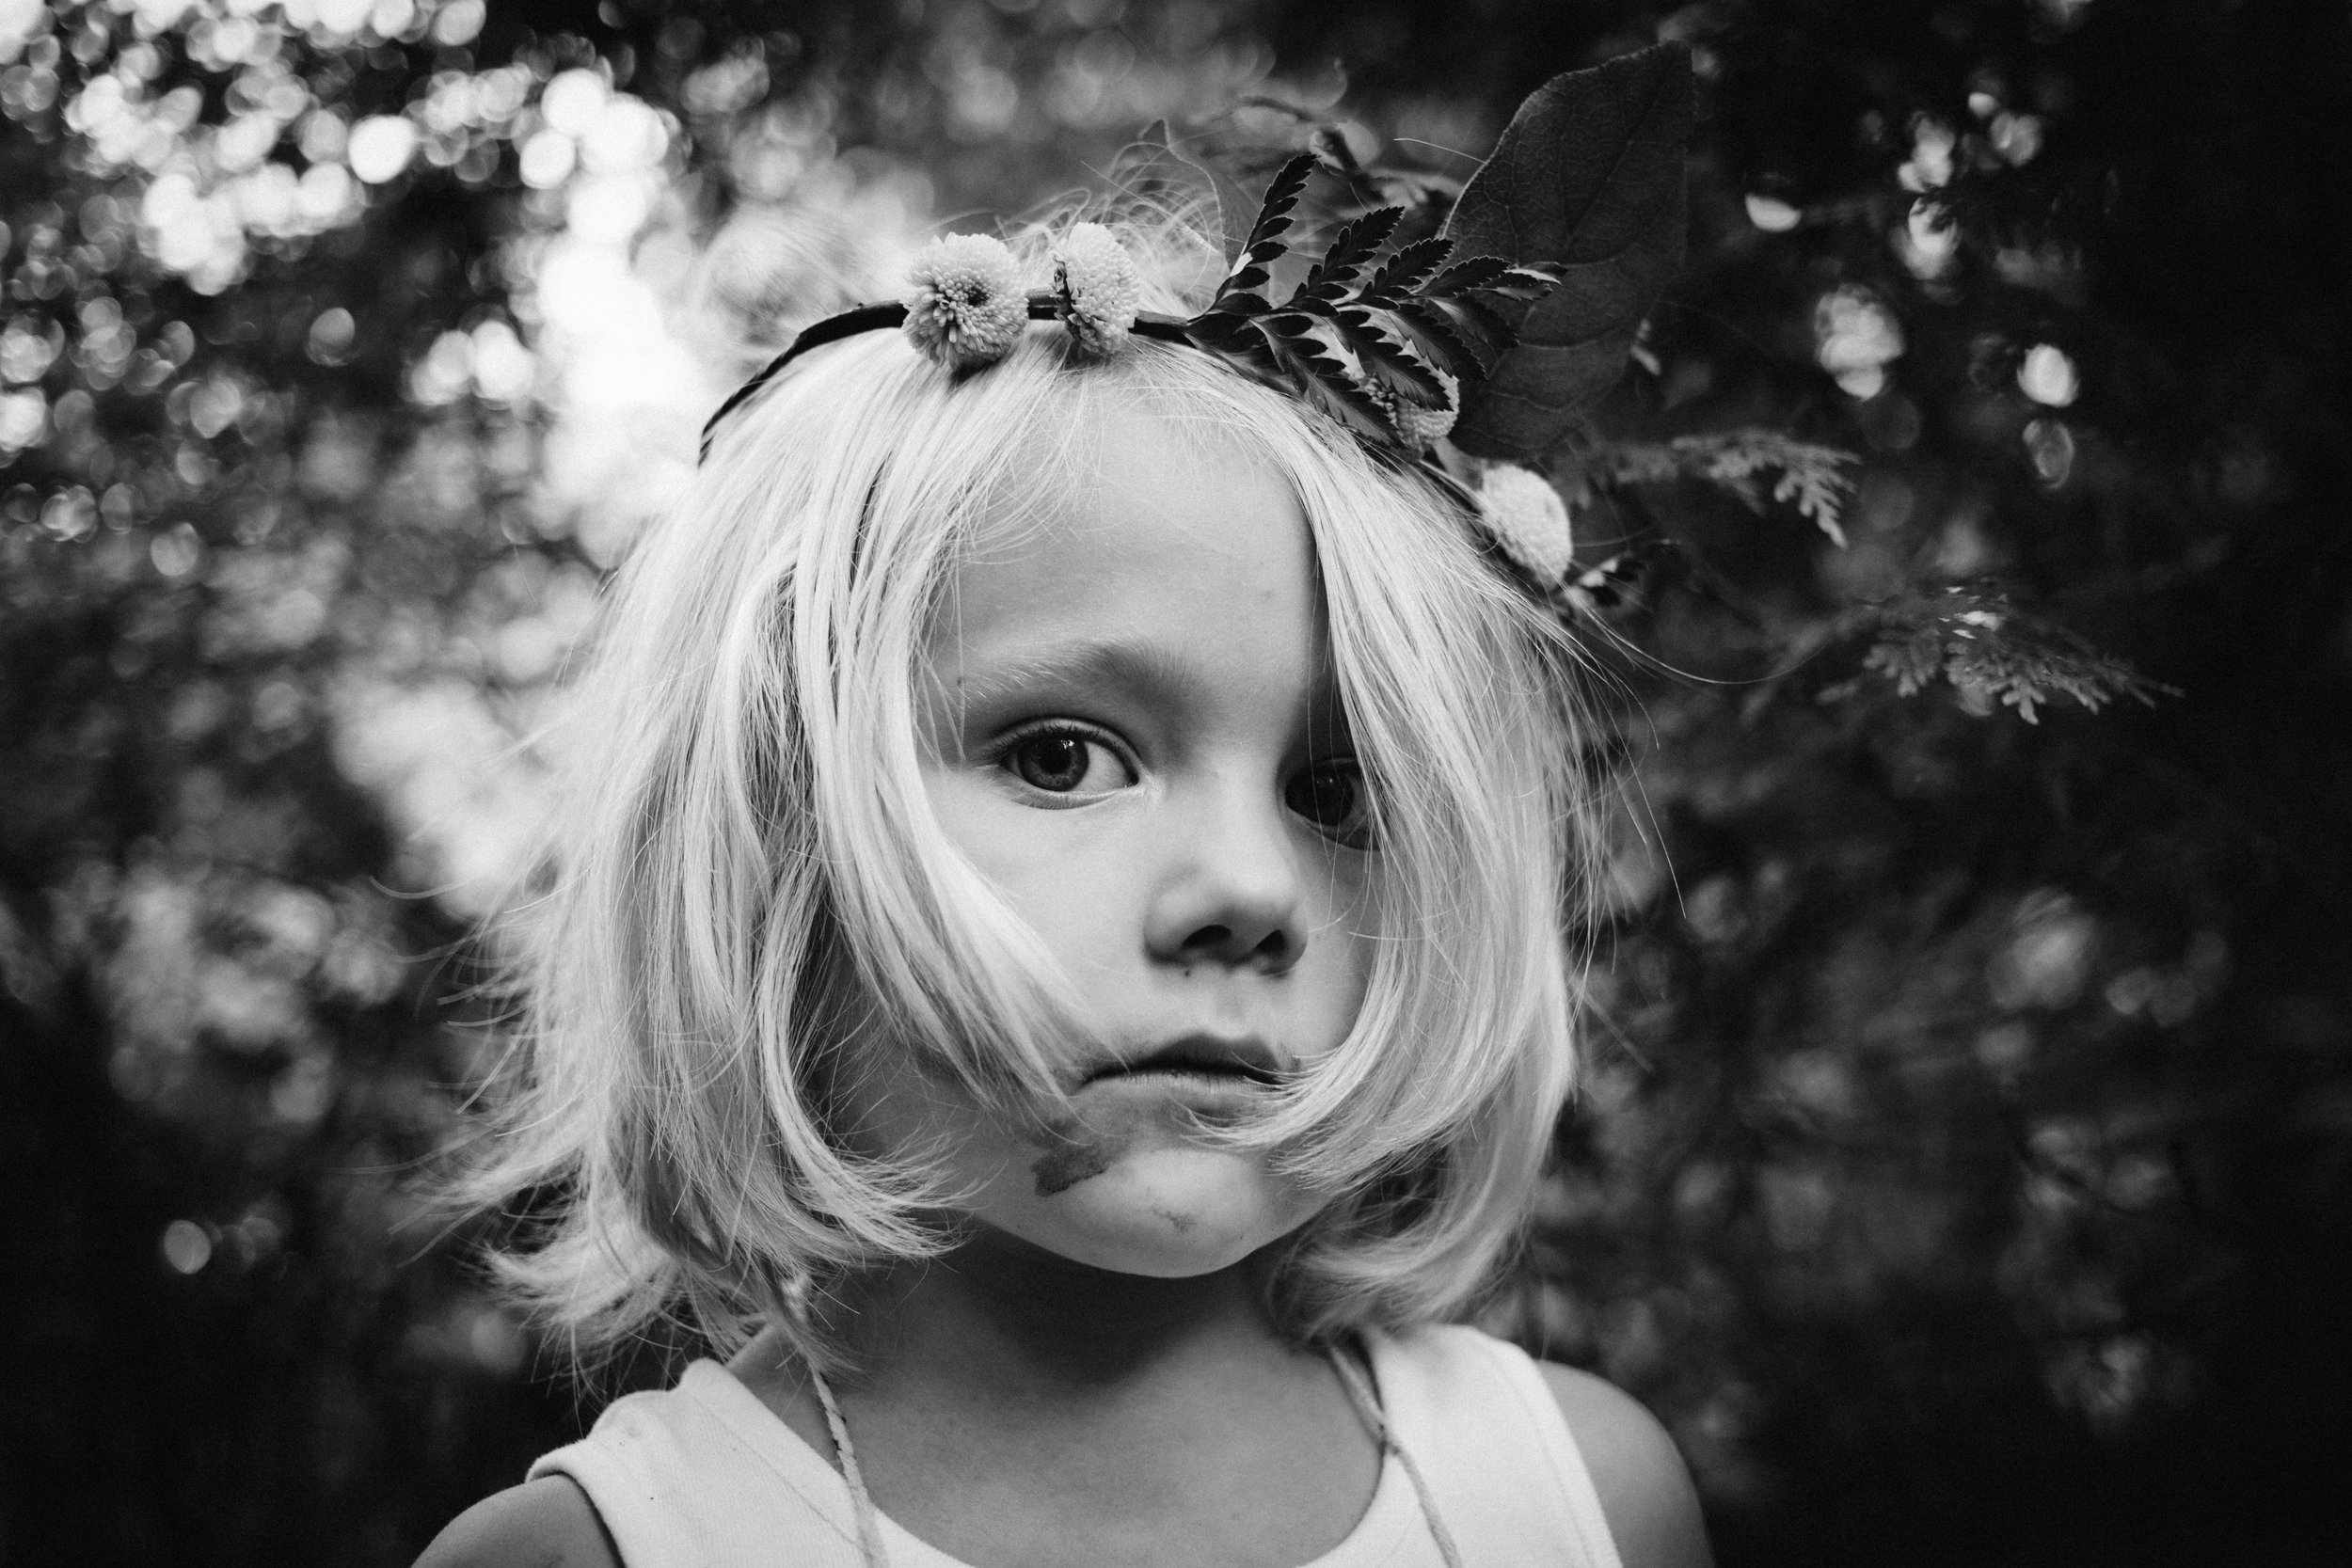 dogwoodphotography_photographer_vancouver_child_roosbday-4.jpg